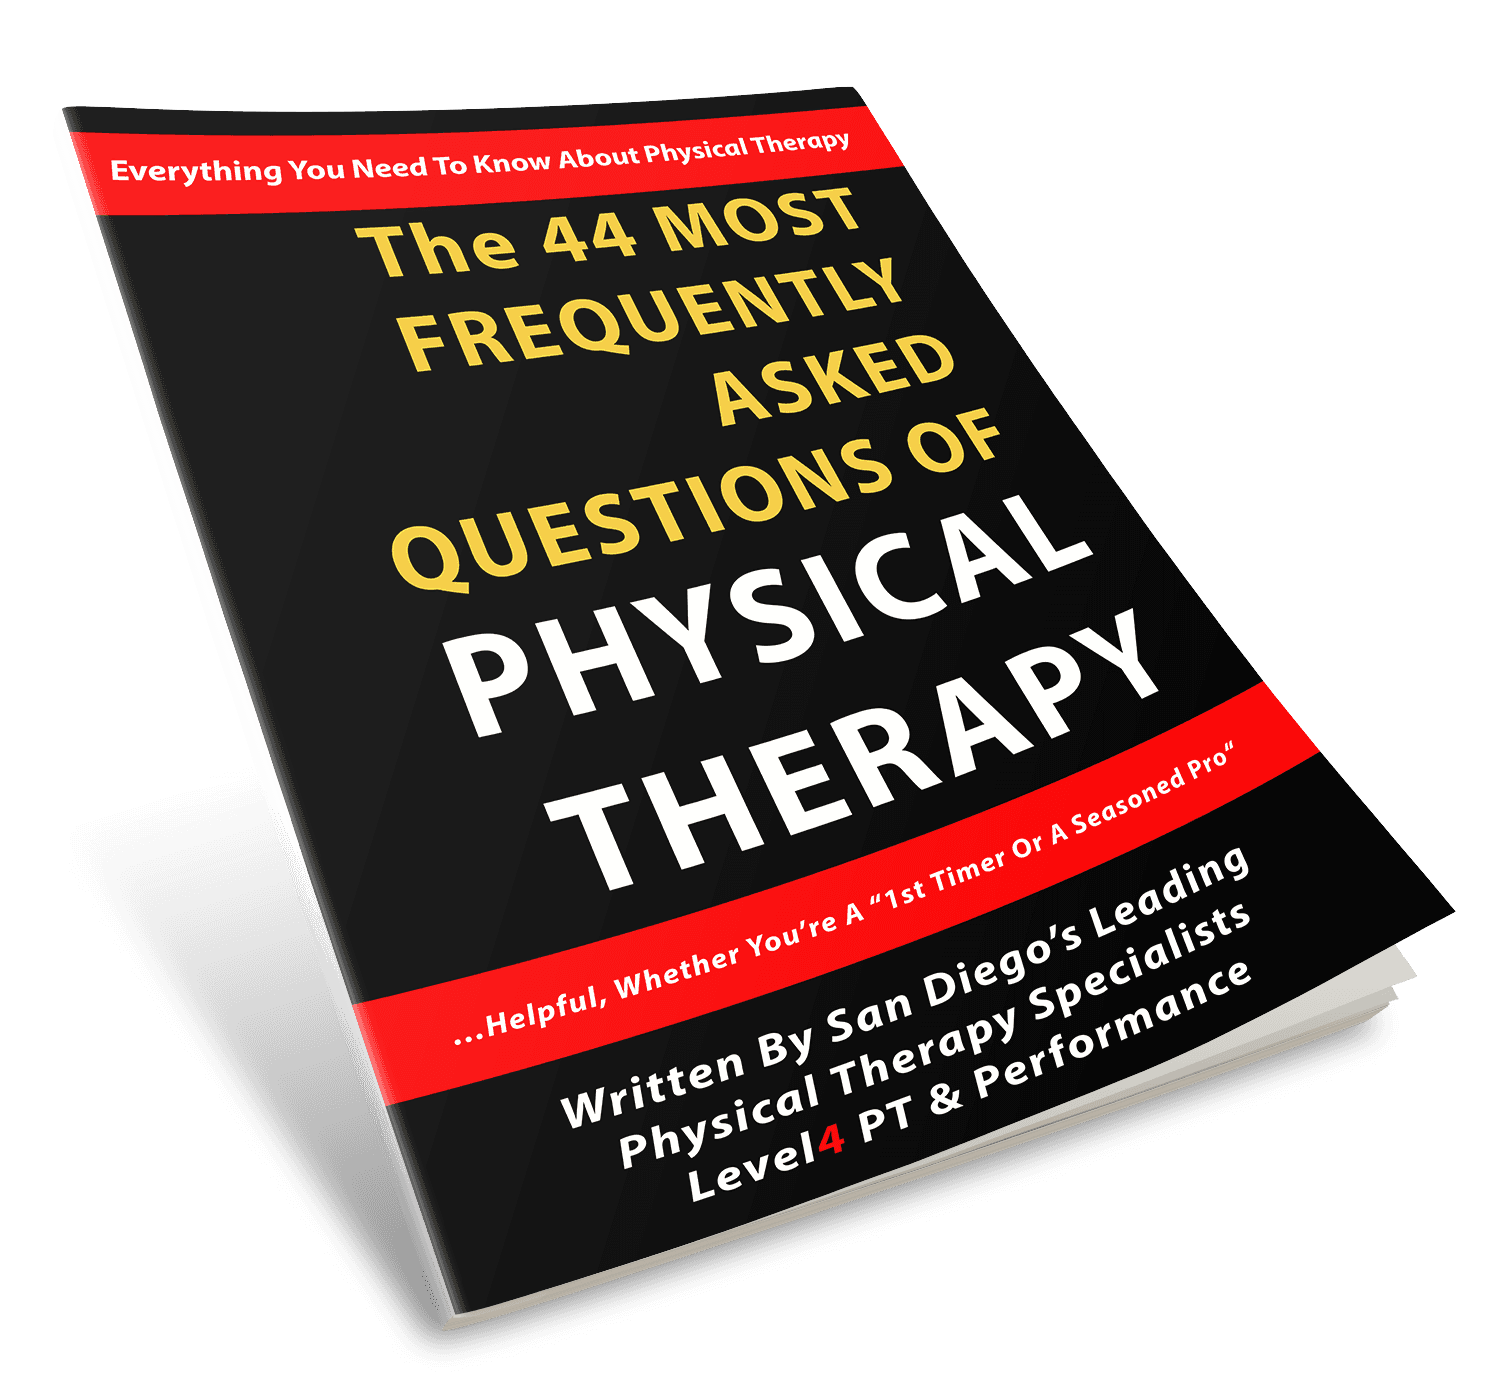 FAQ's on Physical Therapy